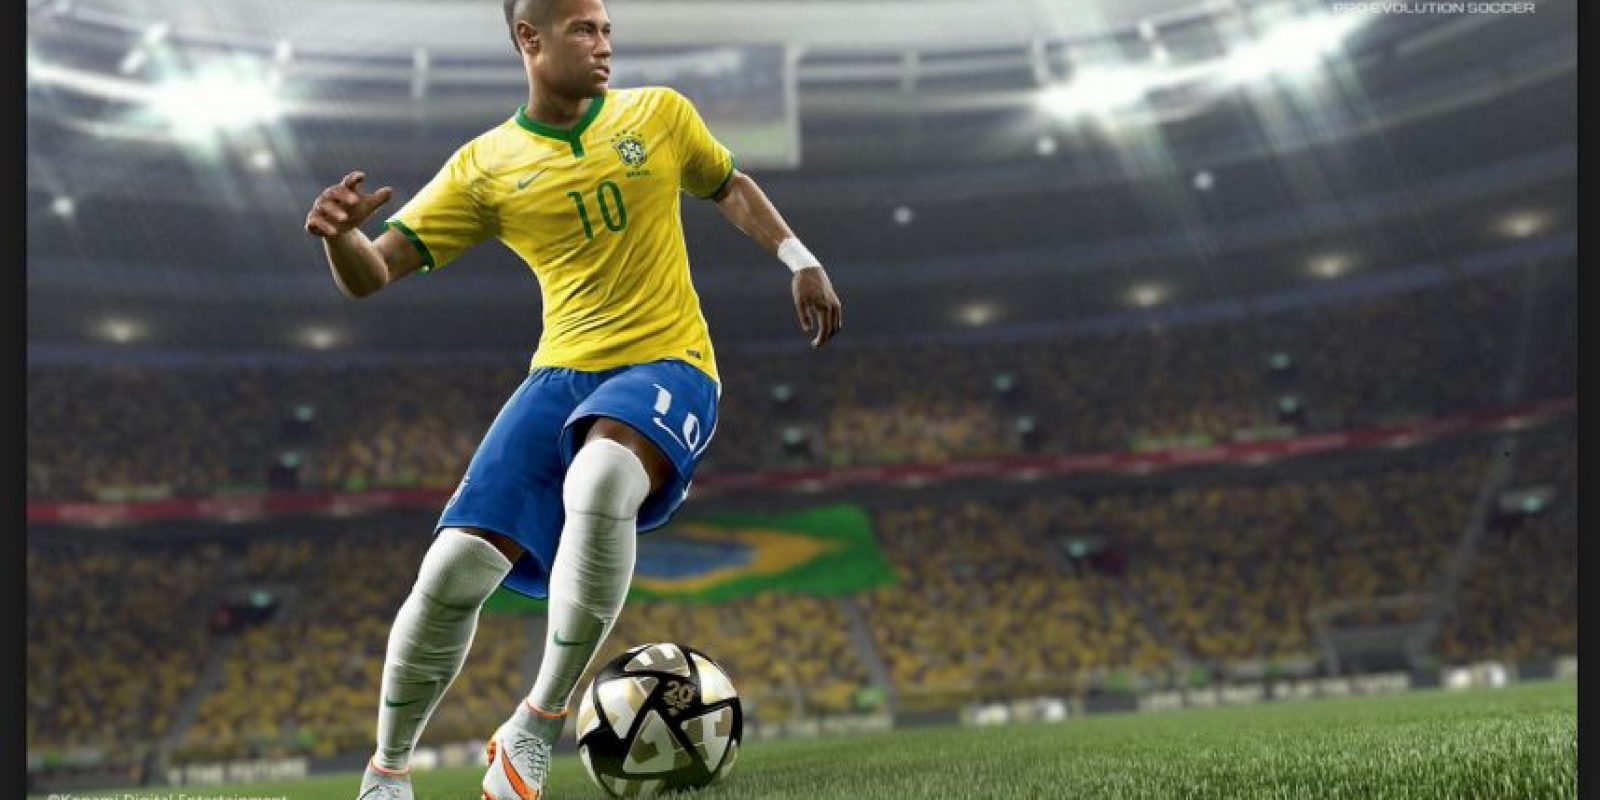 El demo de PES 2016 estará disponible el 13 de agosto Foto: Konami